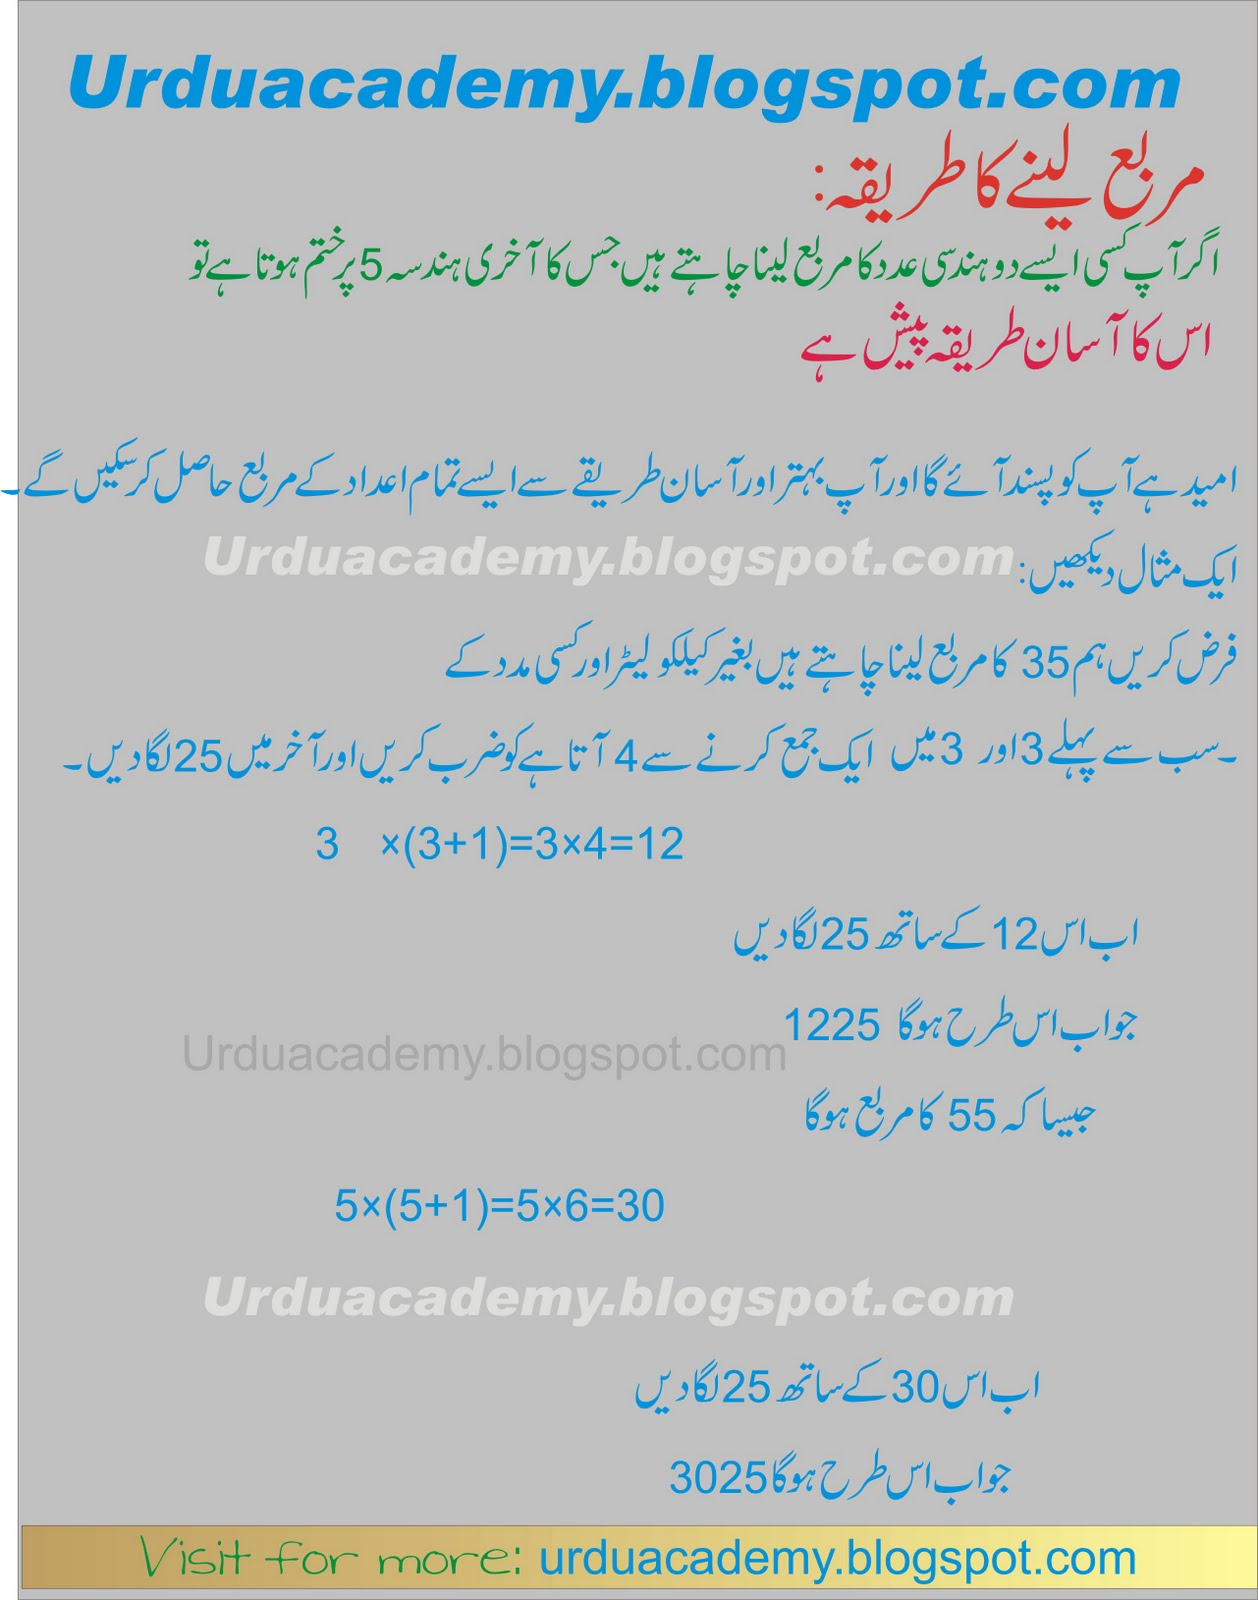 essay meaning in urdu Narrative essay meaning in urdu poetry essay youth power university medical school essay editing checklist elijah: december 12.